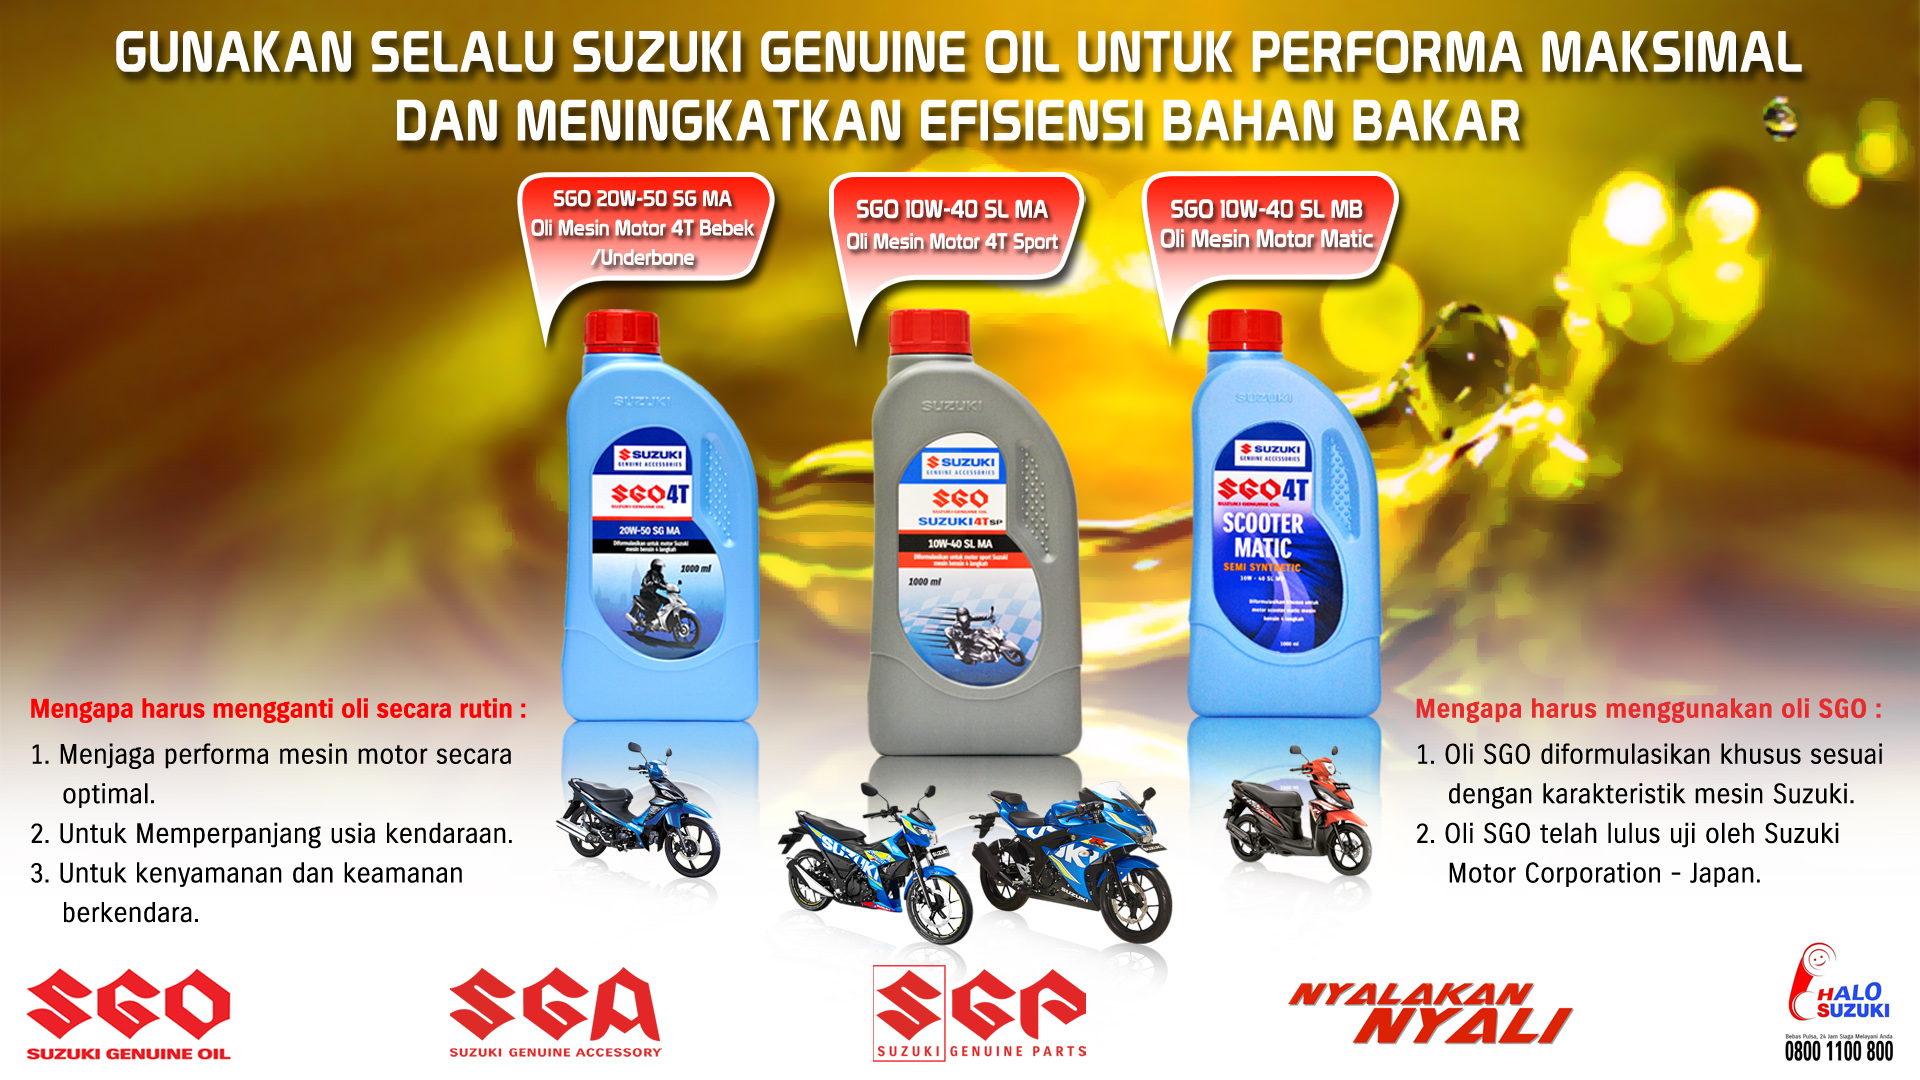 Suzuki Genuine Oil